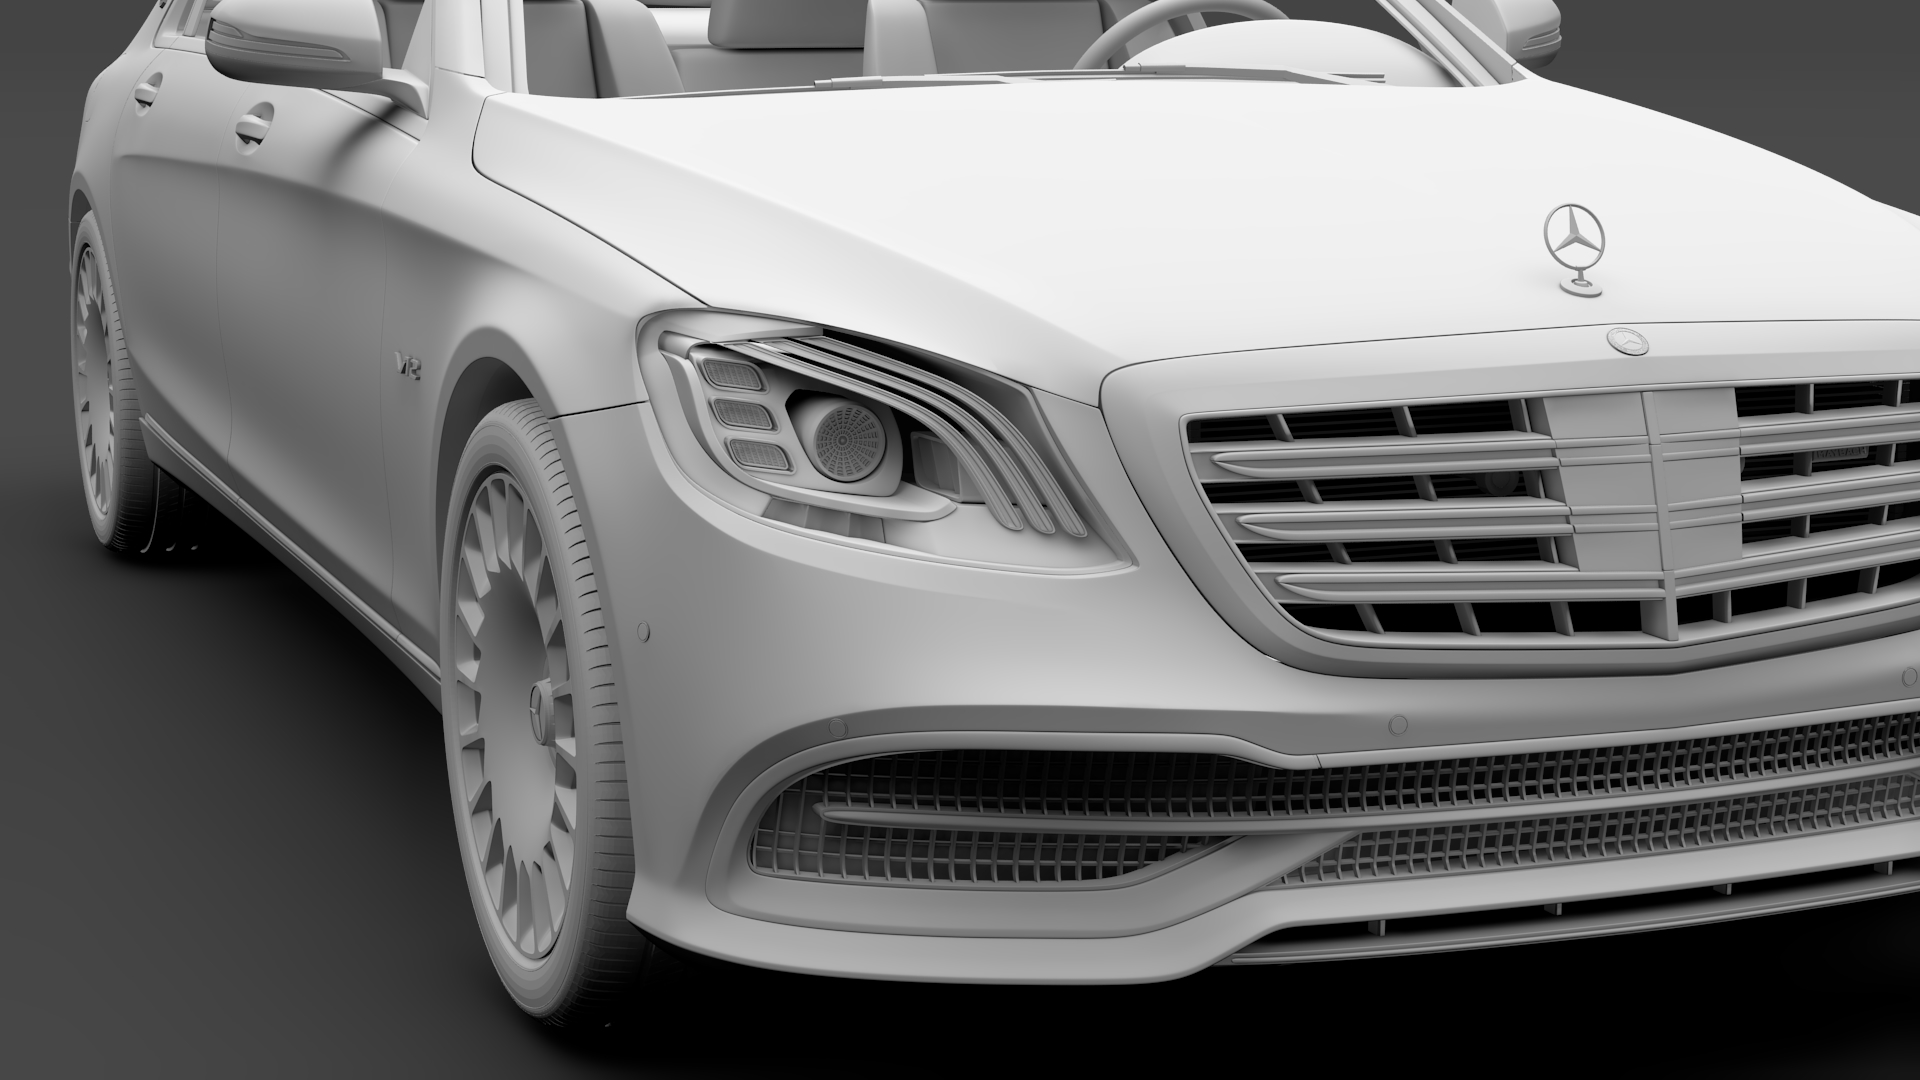 mercedes maybach s 650 x222 2018 3d model 3ds max fbx c4d lwo ma mb hrc xsi obj 284544